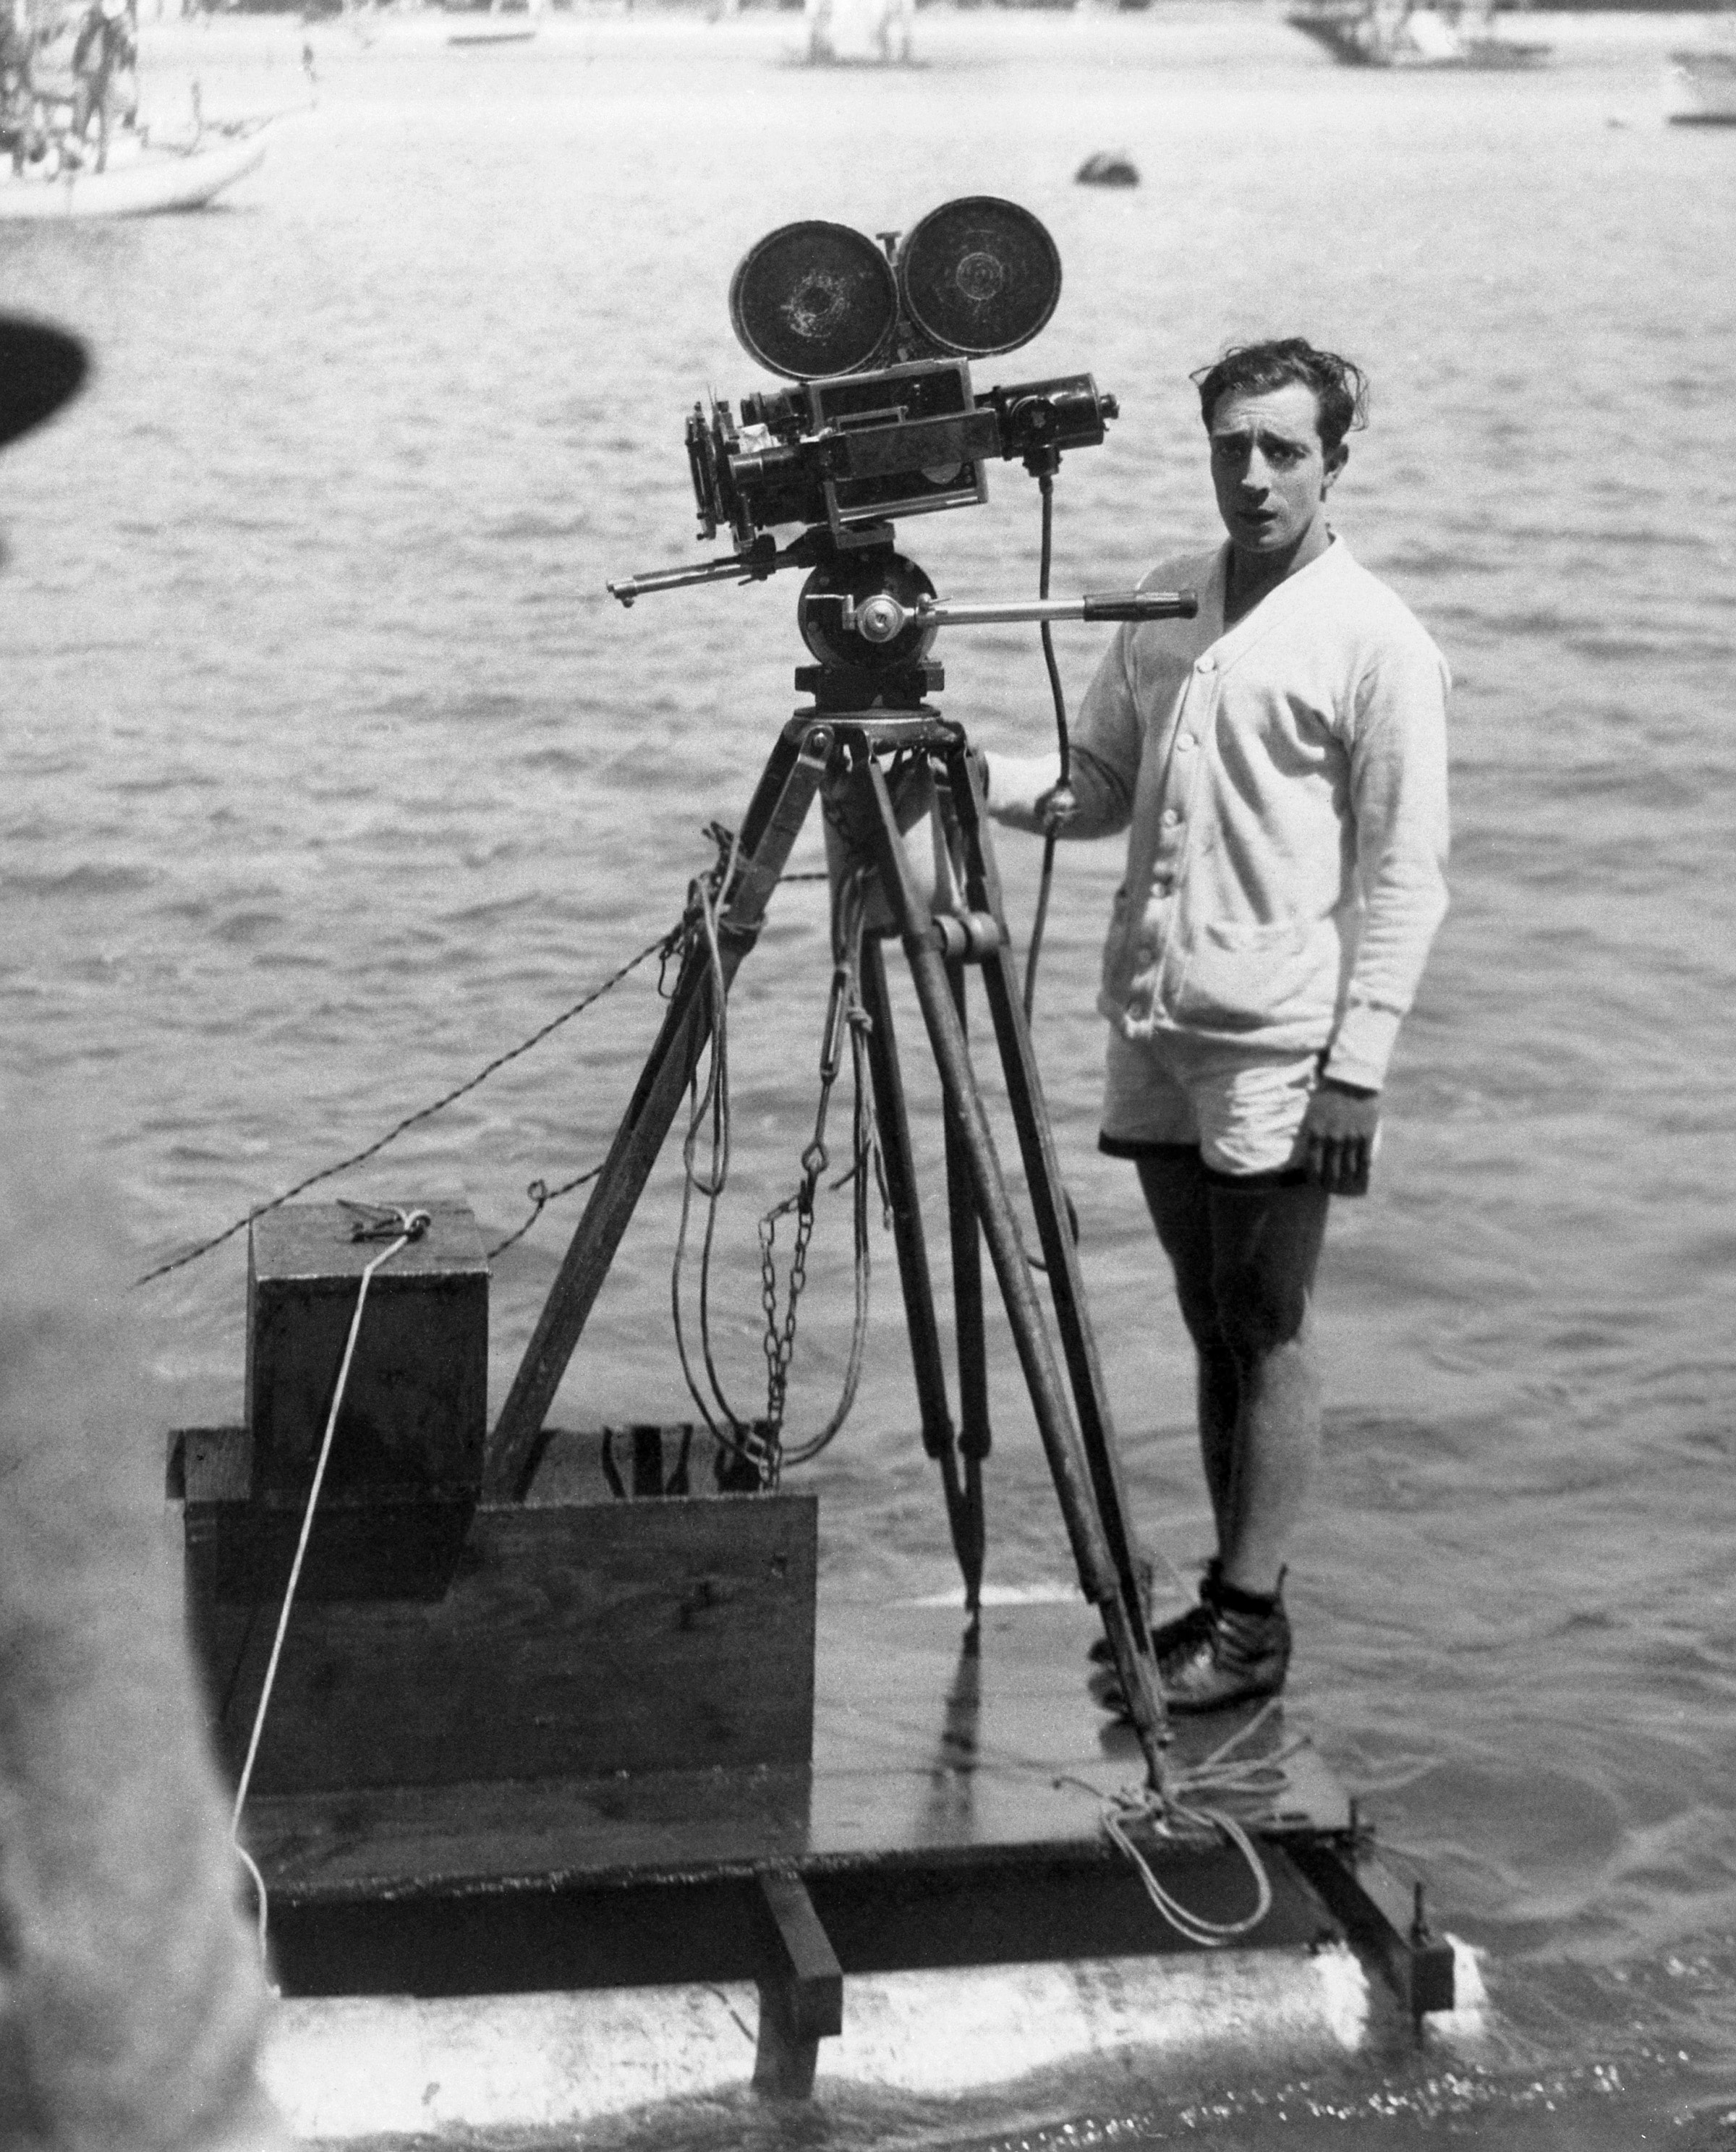 1601367907347_College_set_27.jpg - Nel 1927 sul set del film College